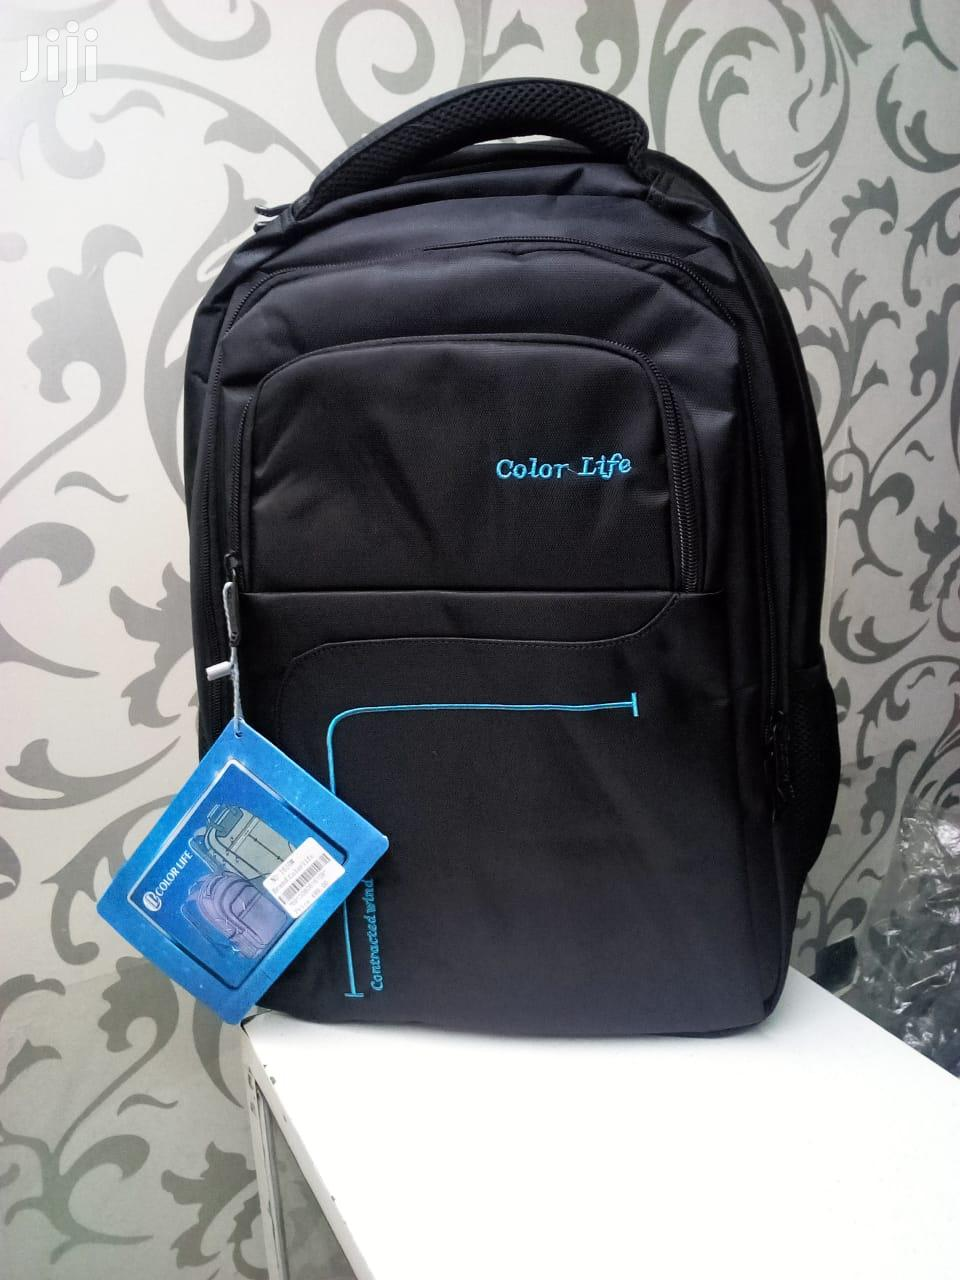 Color Life Backpack